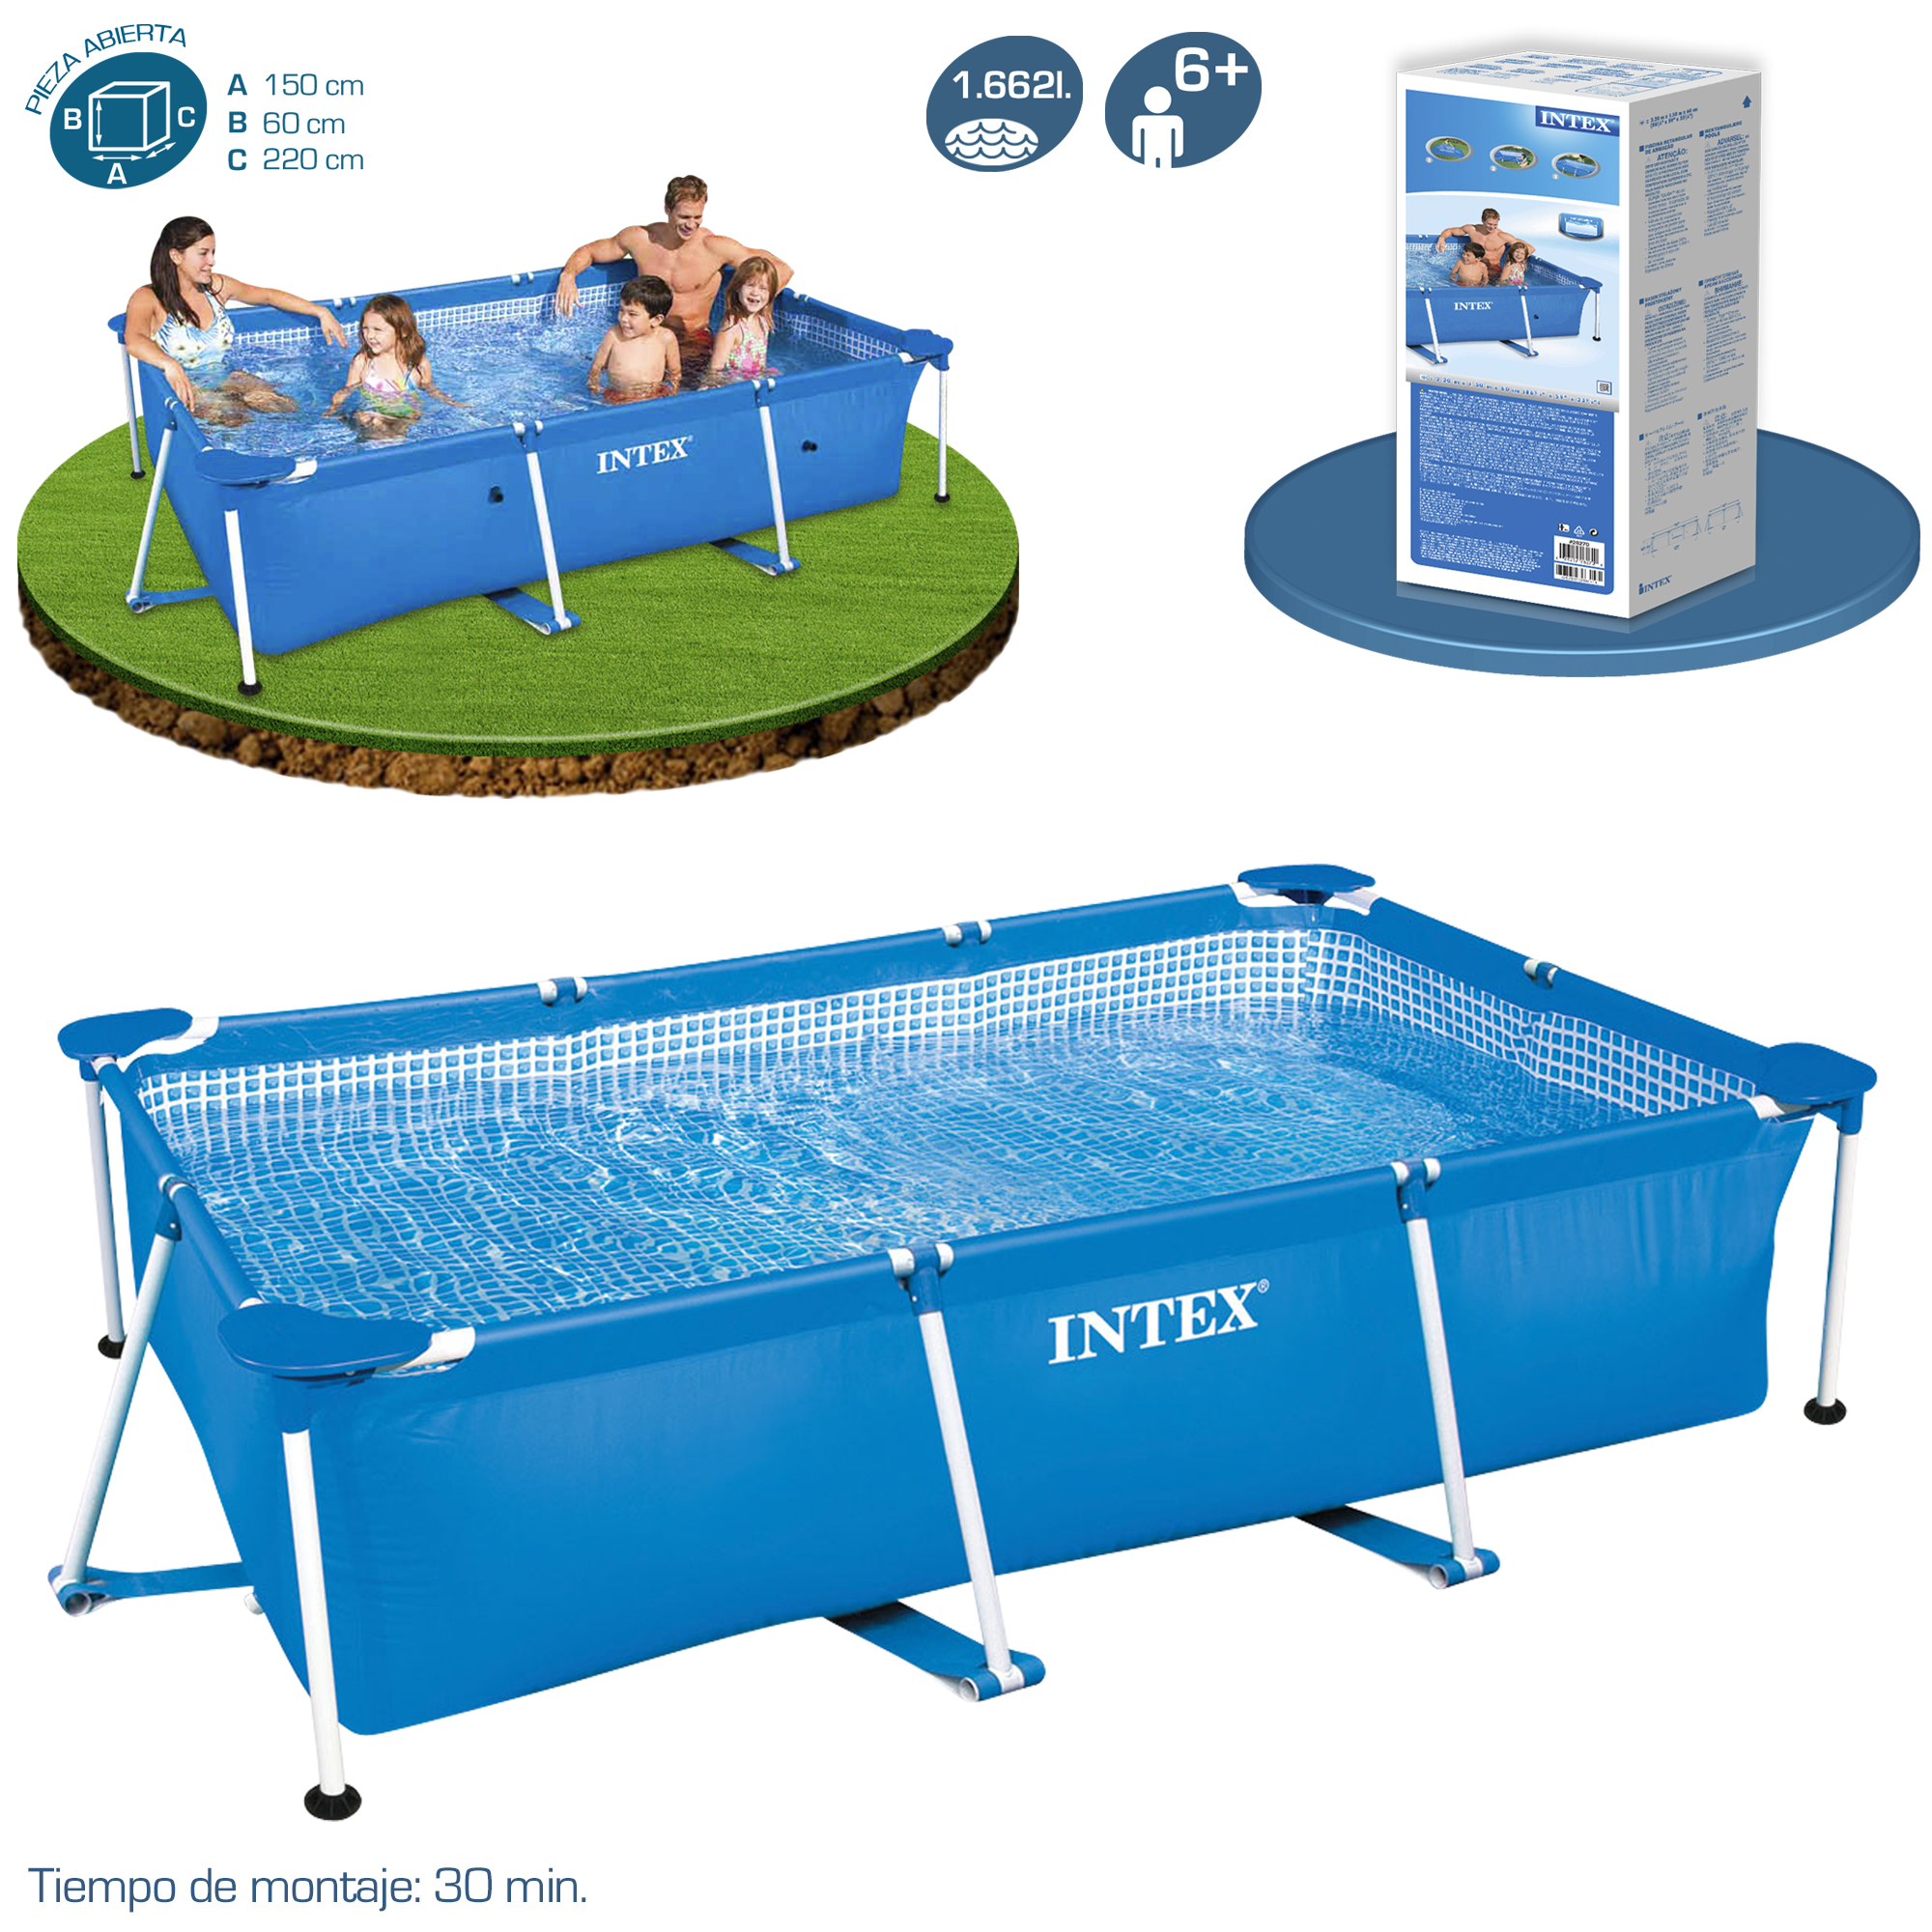 Intex Piscinas Acessorios Piscina Intex Small Rectangular Frame Piscinas Desmontables